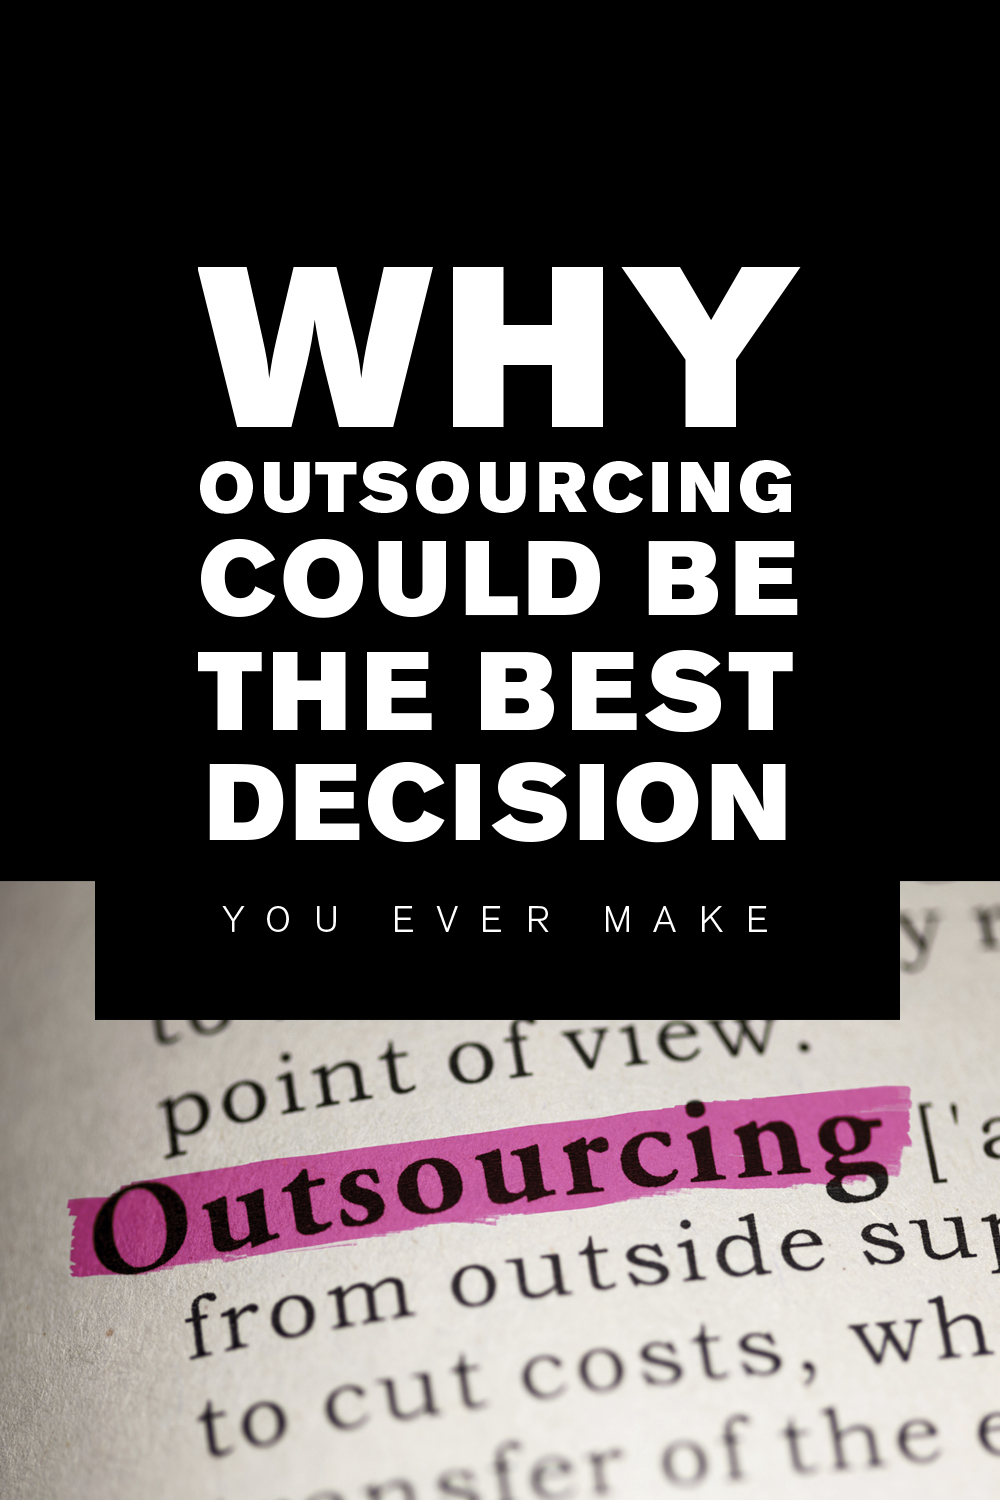 Why outsourcing could be the best decision you ever make!